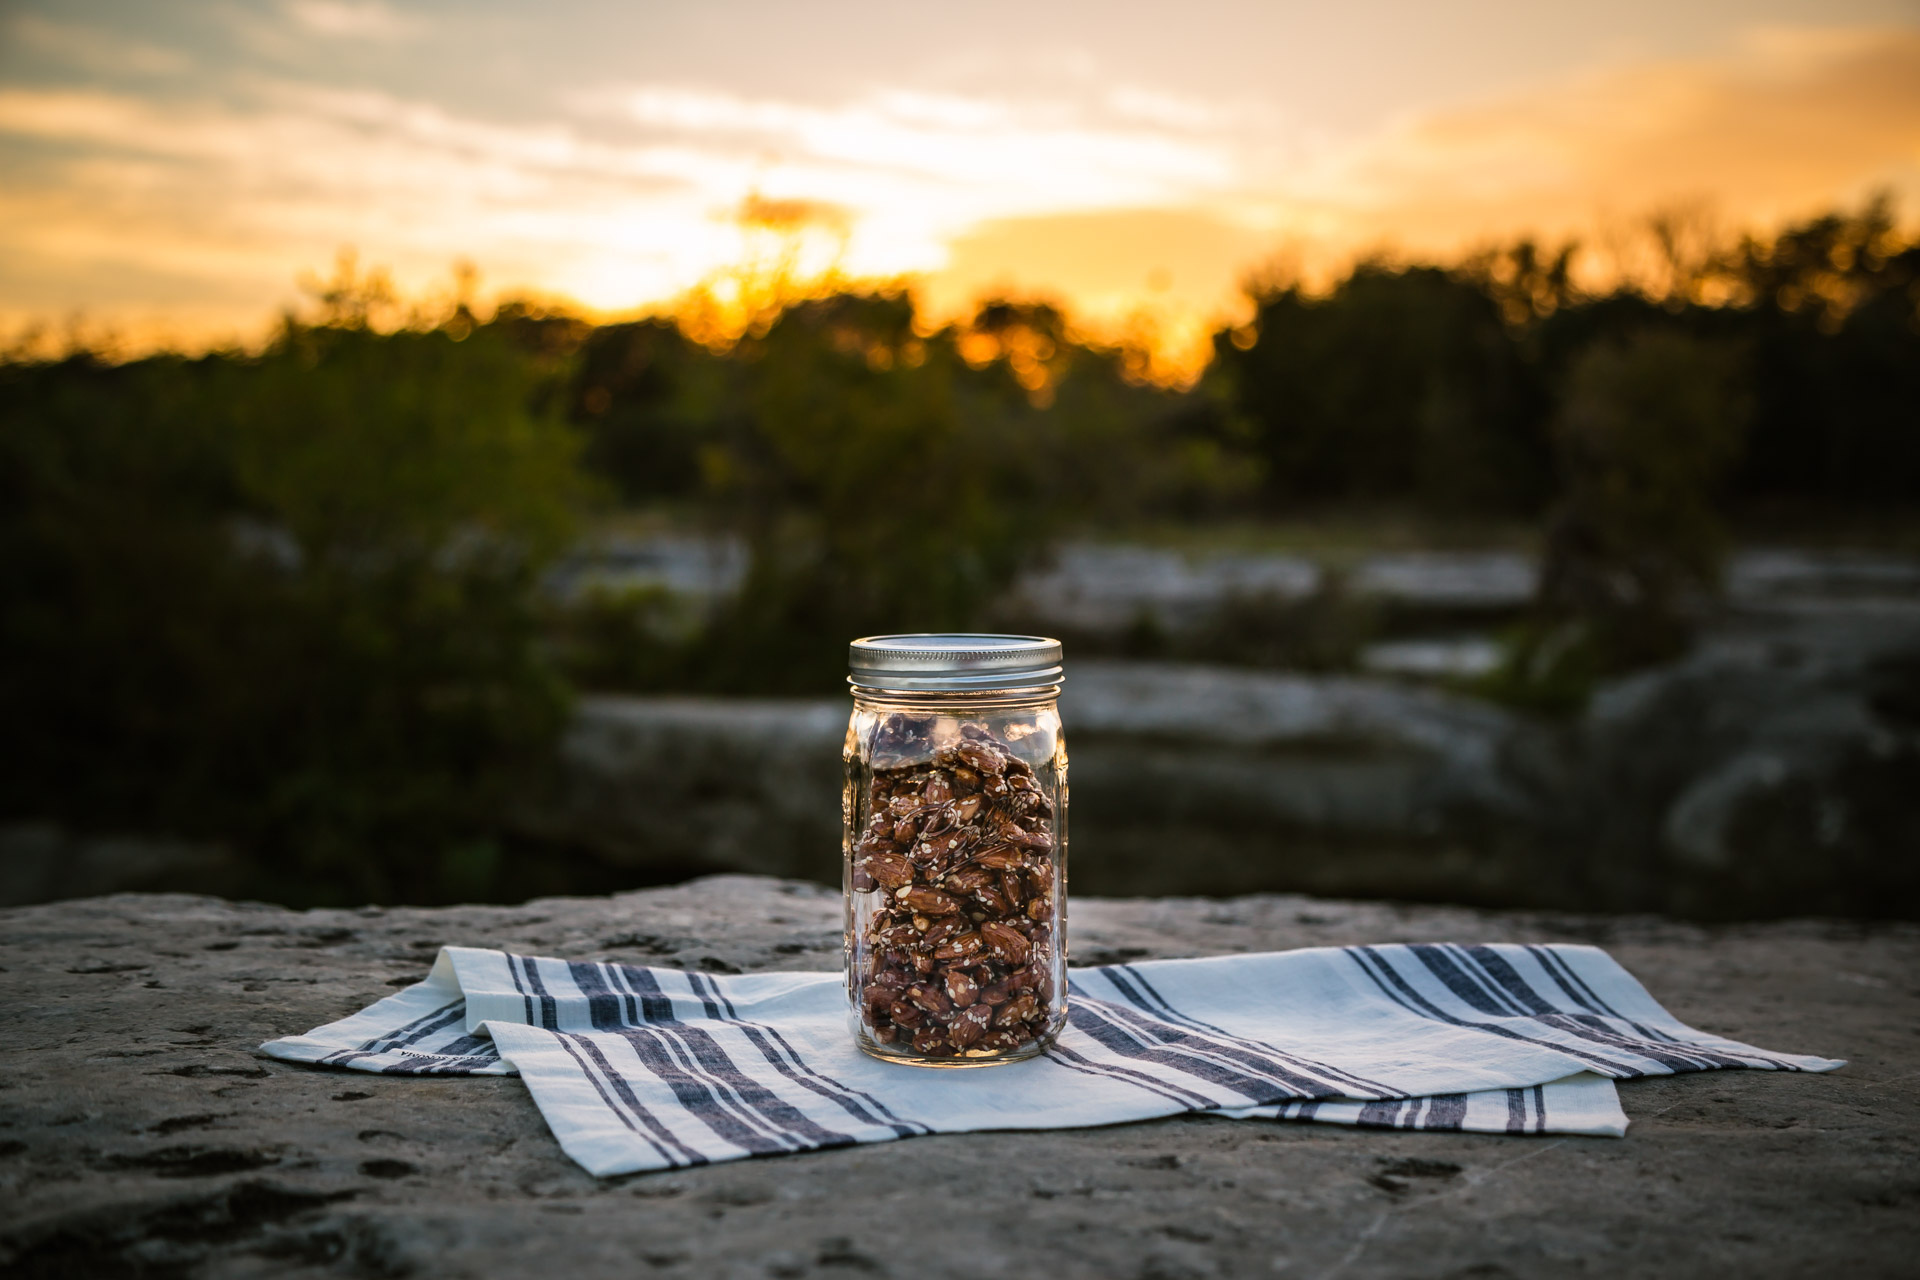 Sunset In A Jar aka Honey Sesame Almonds